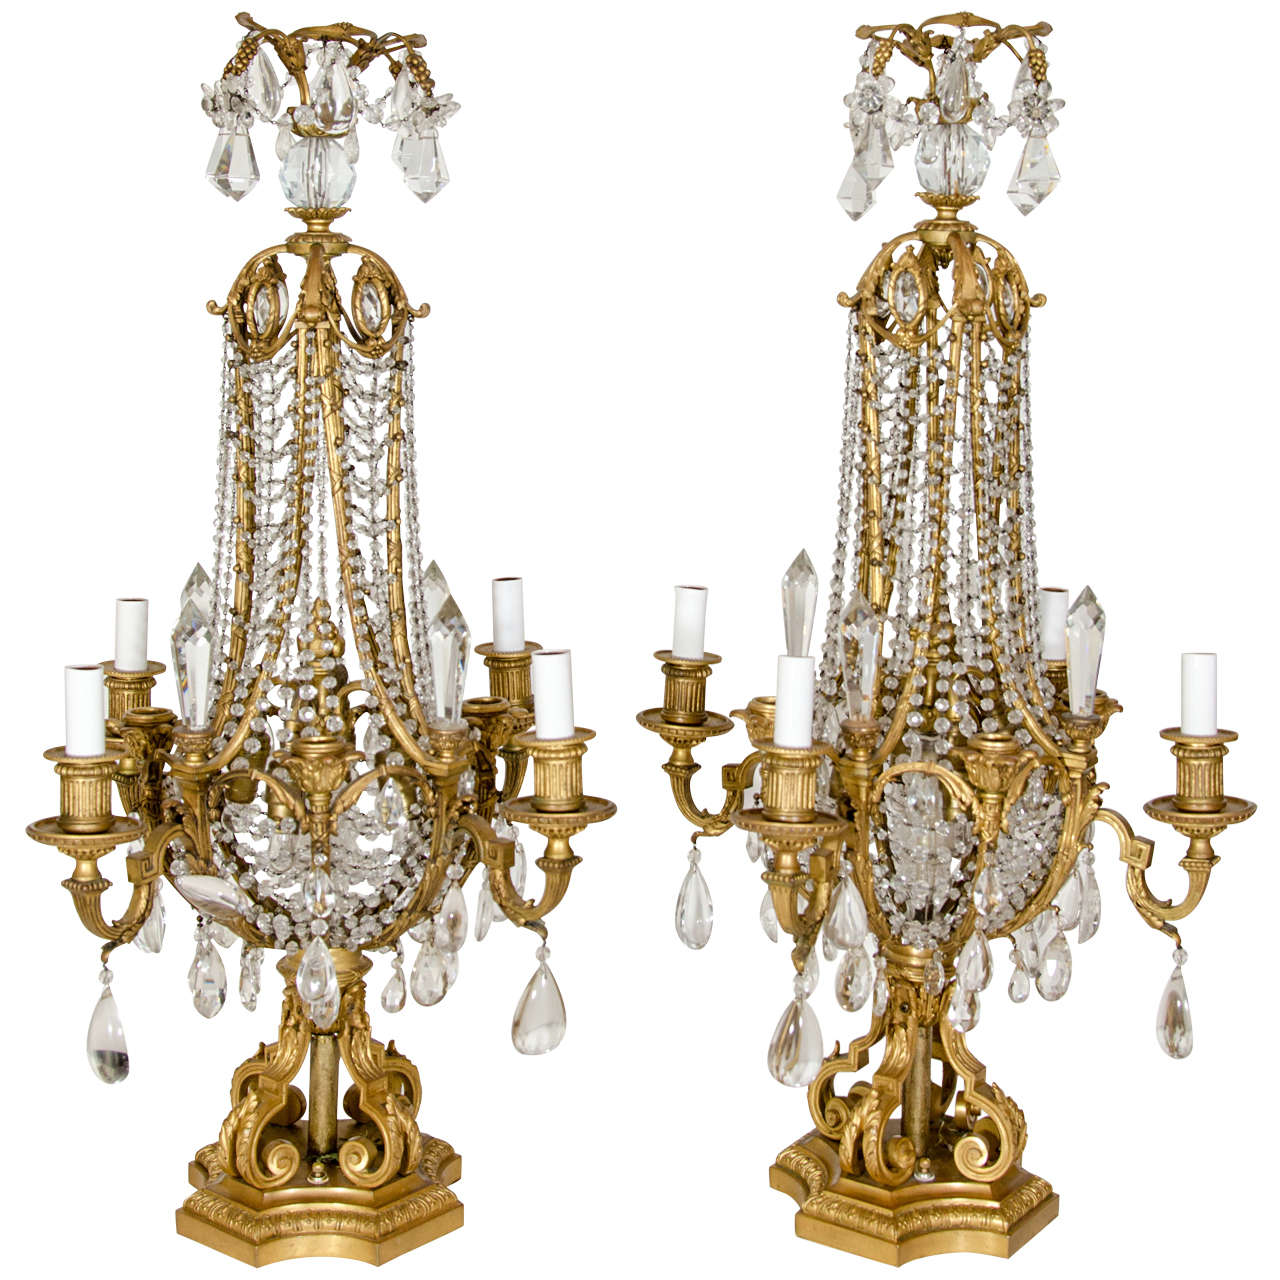 Pair of Antique French Louis XVI Style Gilt Bronze and Crystal